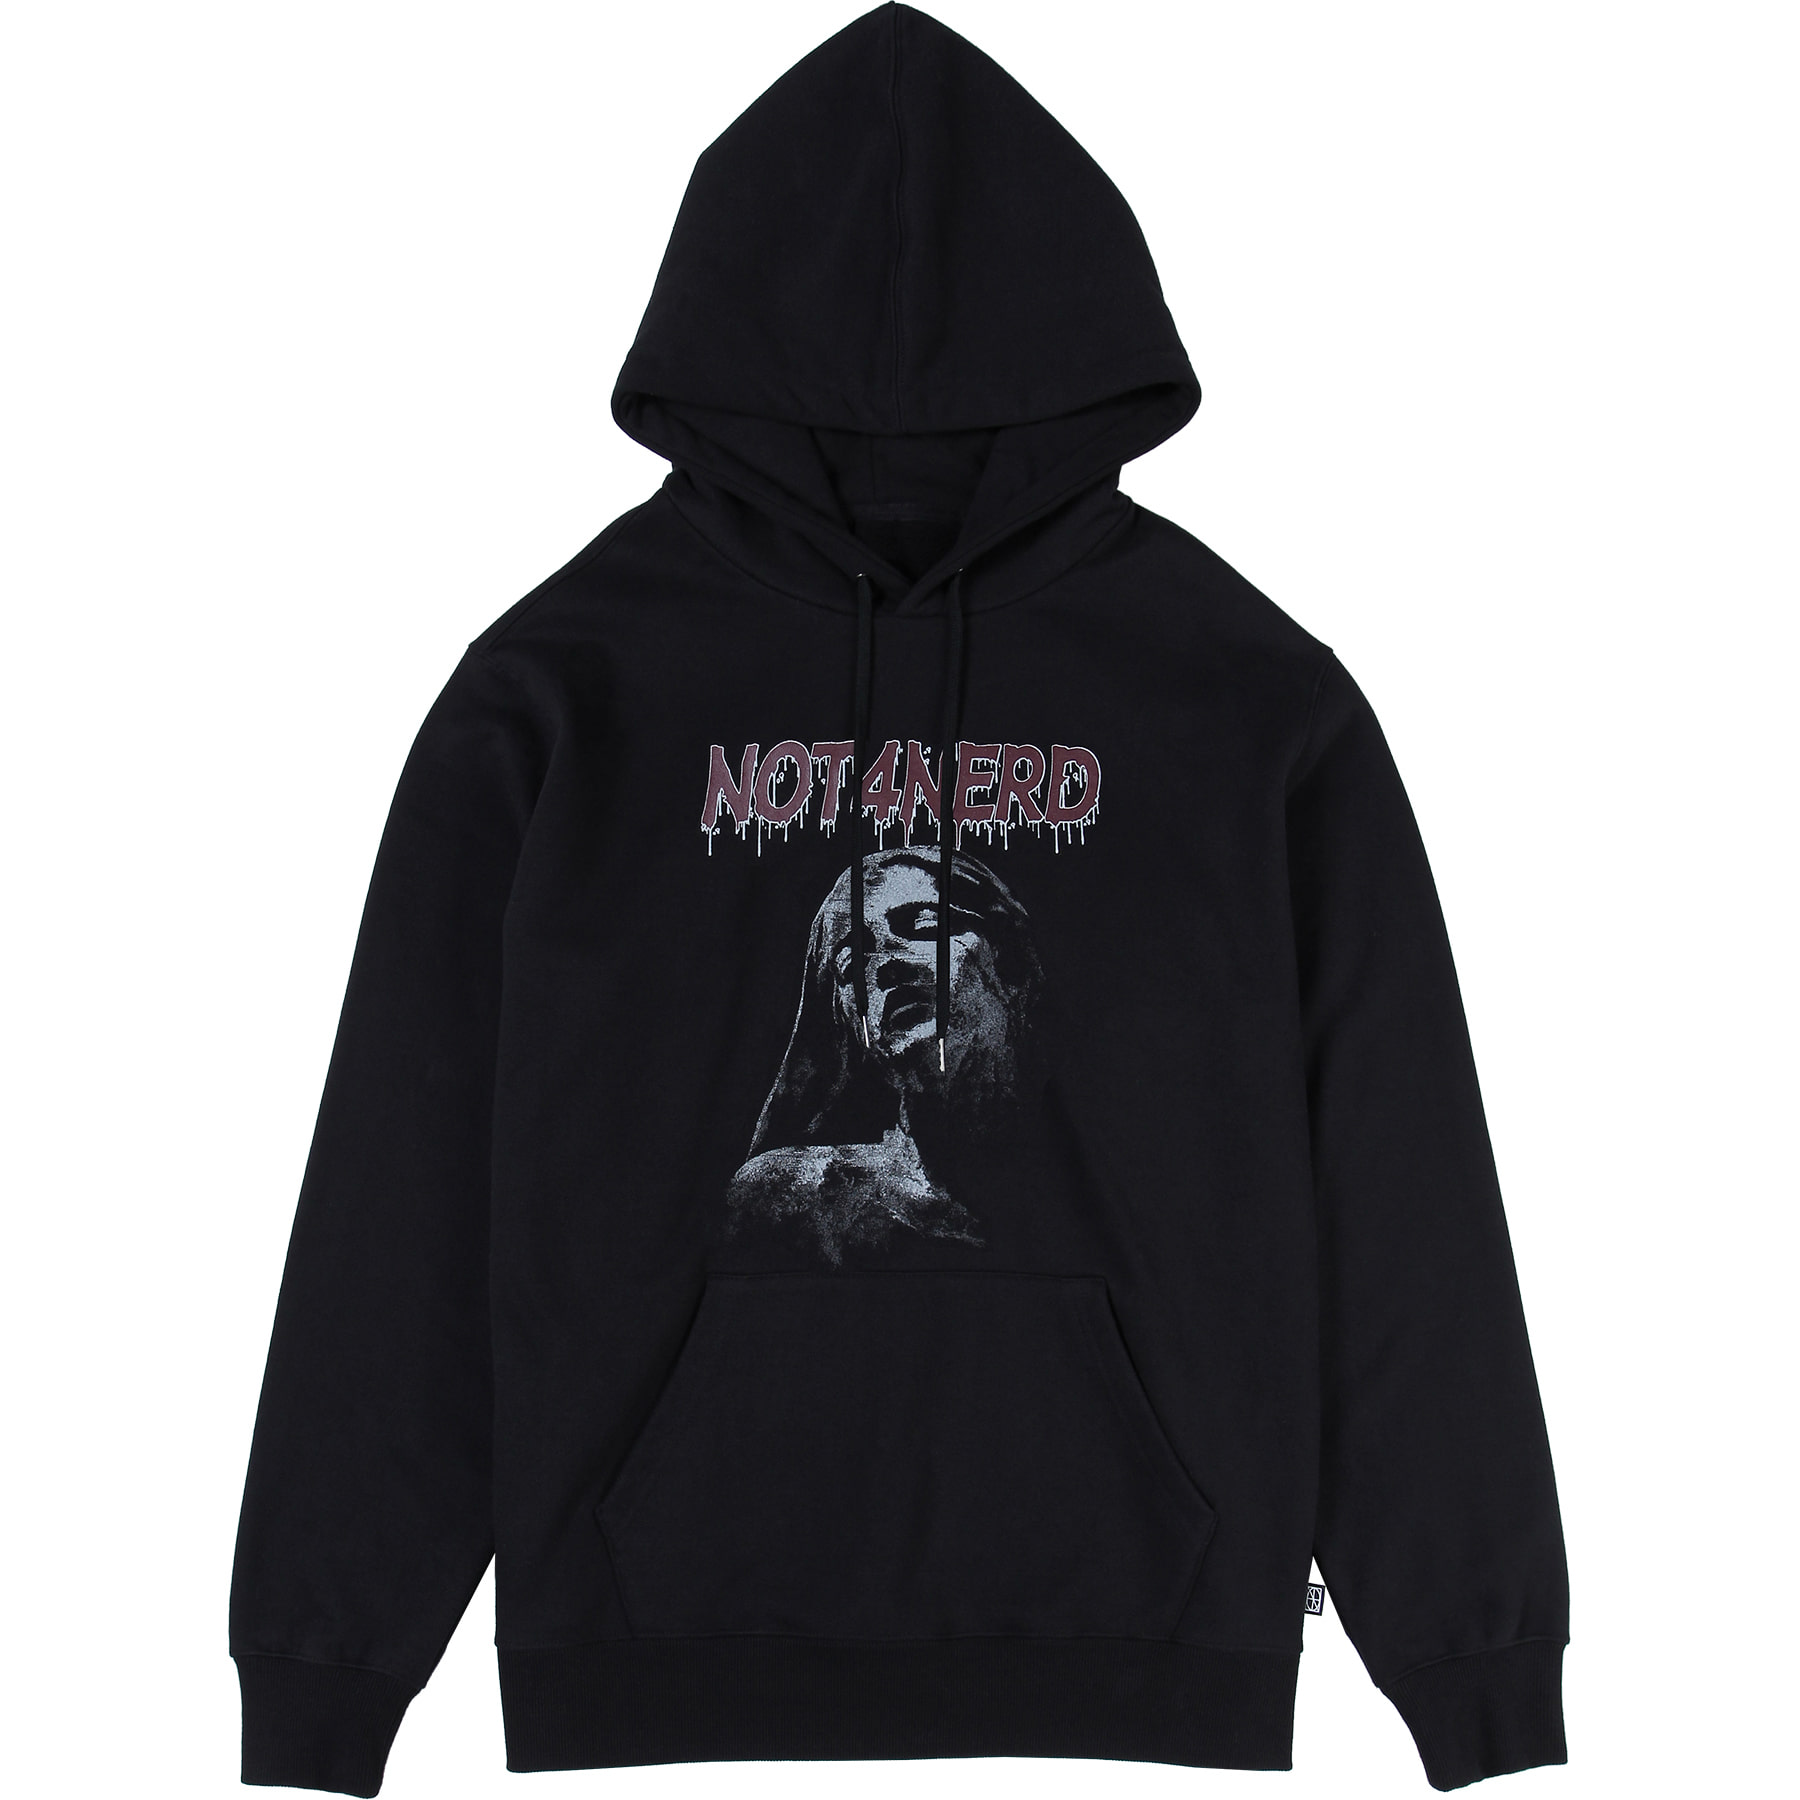 Pain Pullover Hood [Black],NOT4NERD